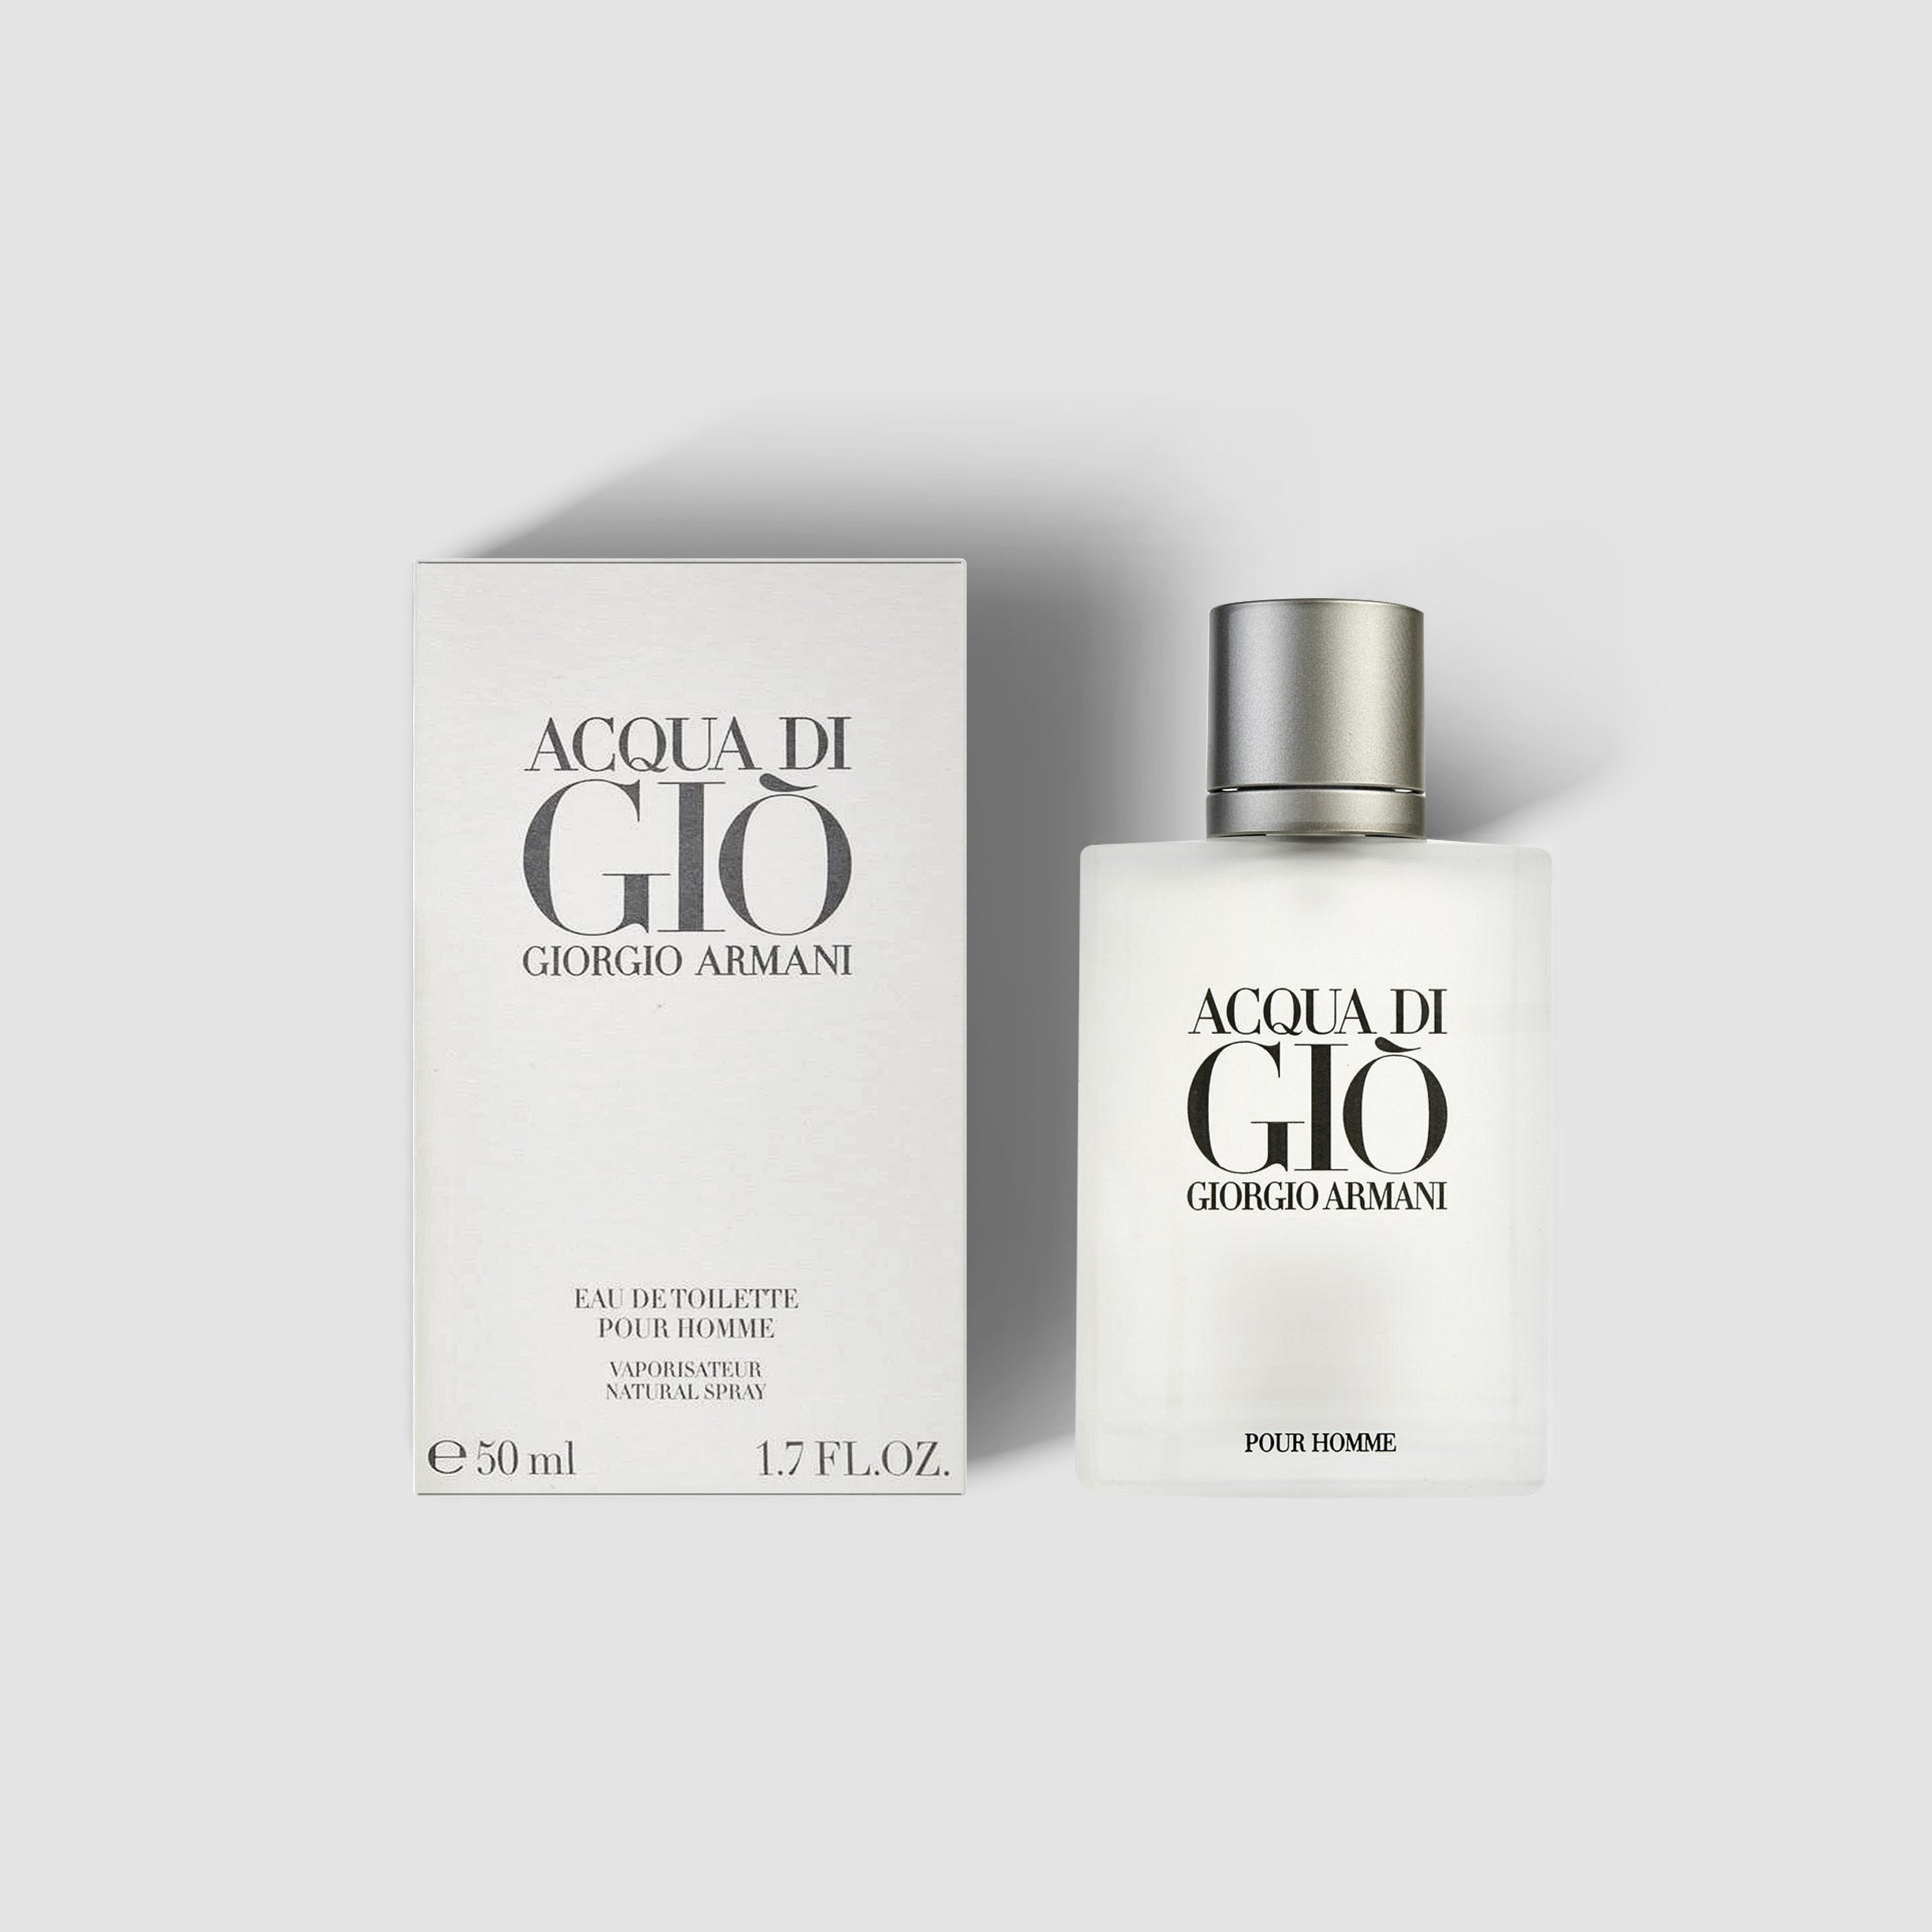 Acqua Di Gio Eau De Toilette Spray for Men - AromaFi